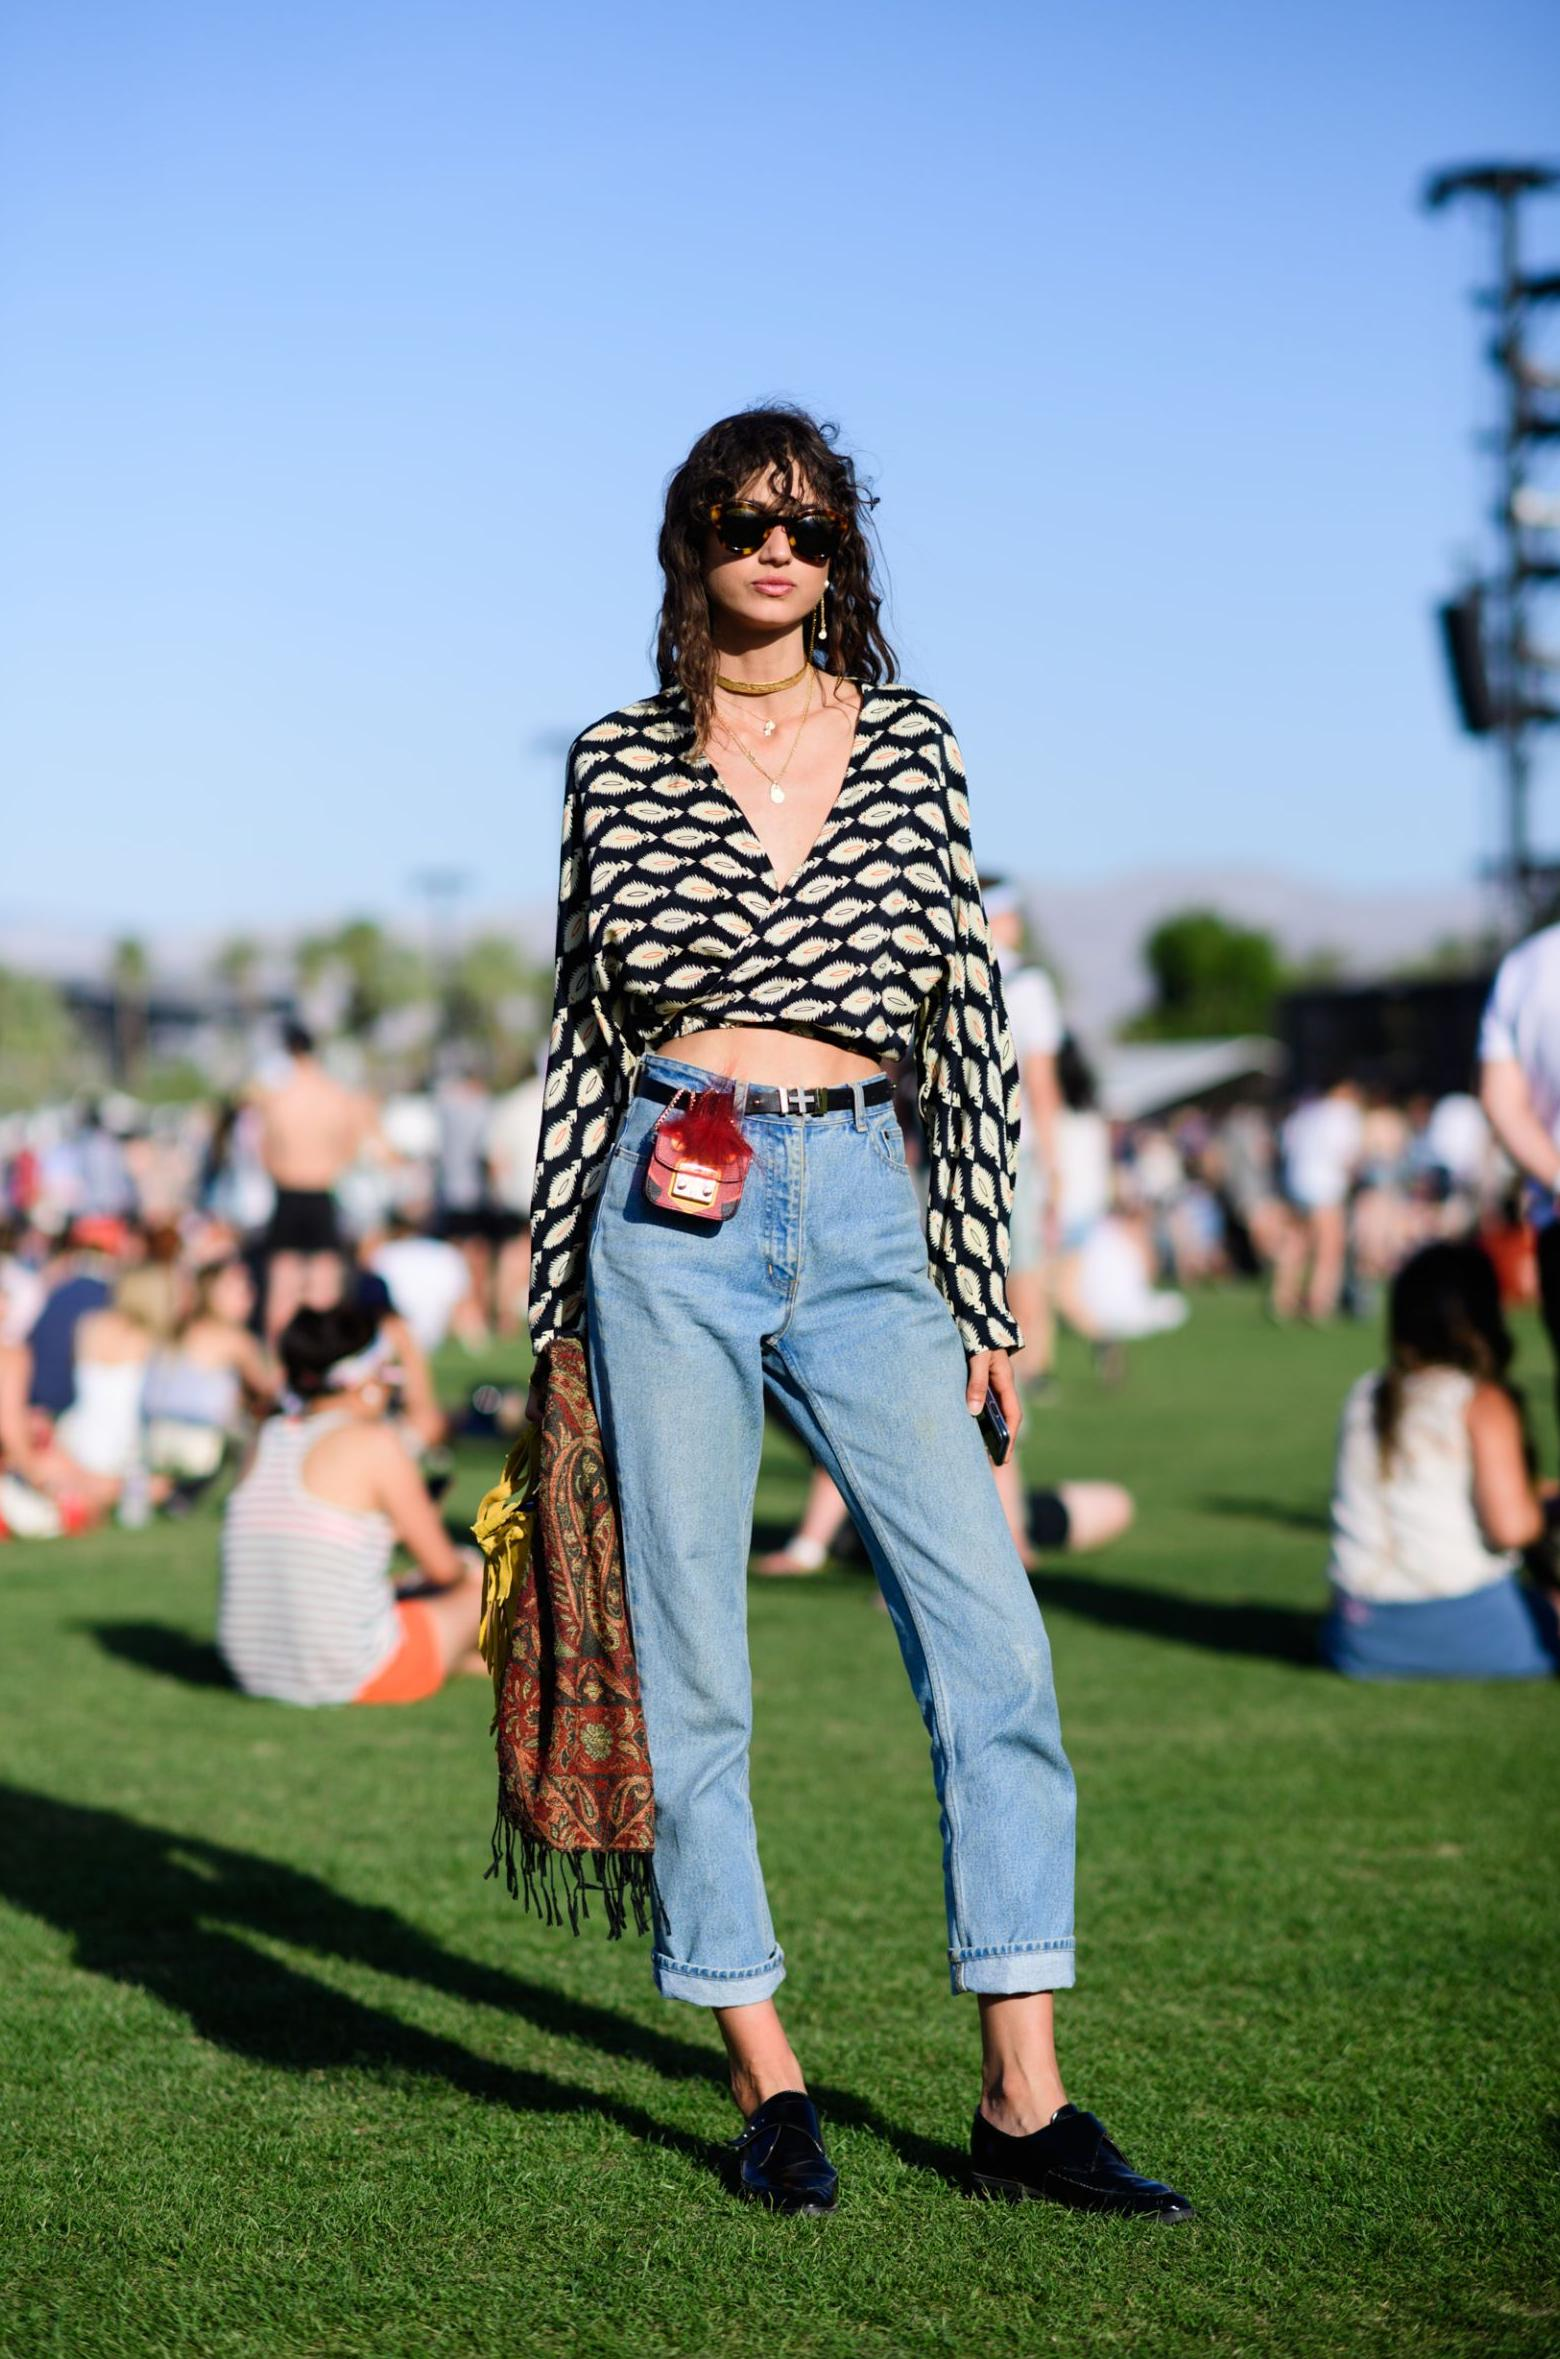 Coachella Themed Party Outfits: My Favorite Looks To Try 2022